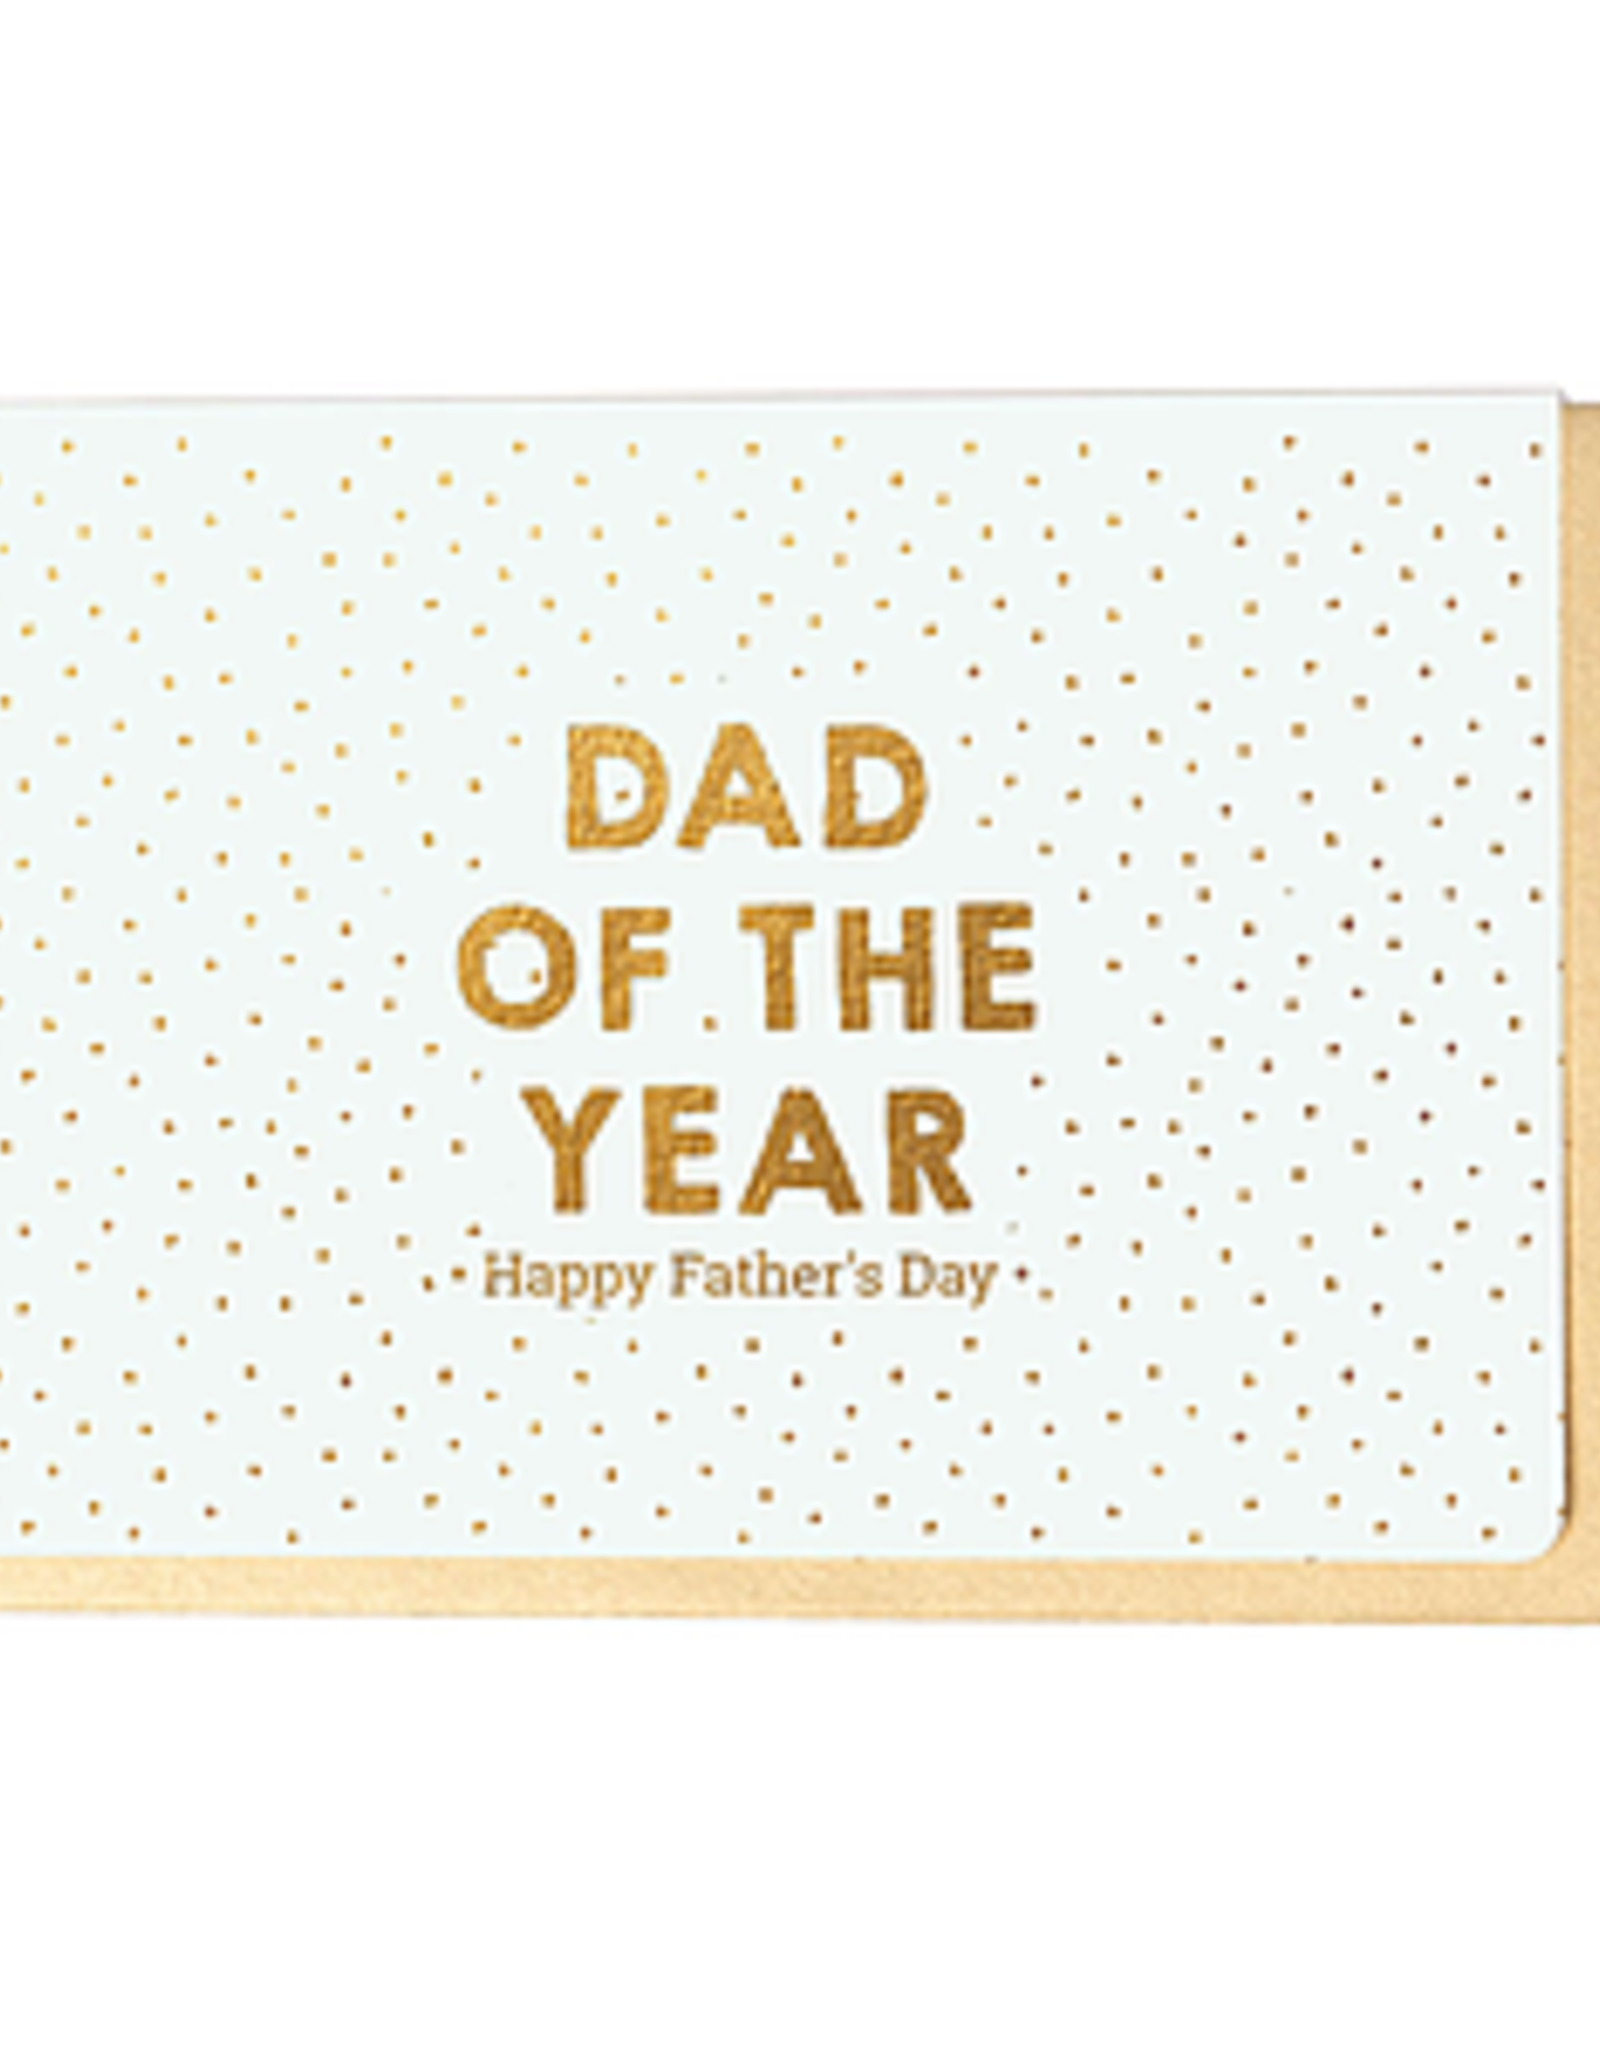 Enfant Terrible Dubbele wenskaart Enfant terrible: Dad of the year Happy father's day